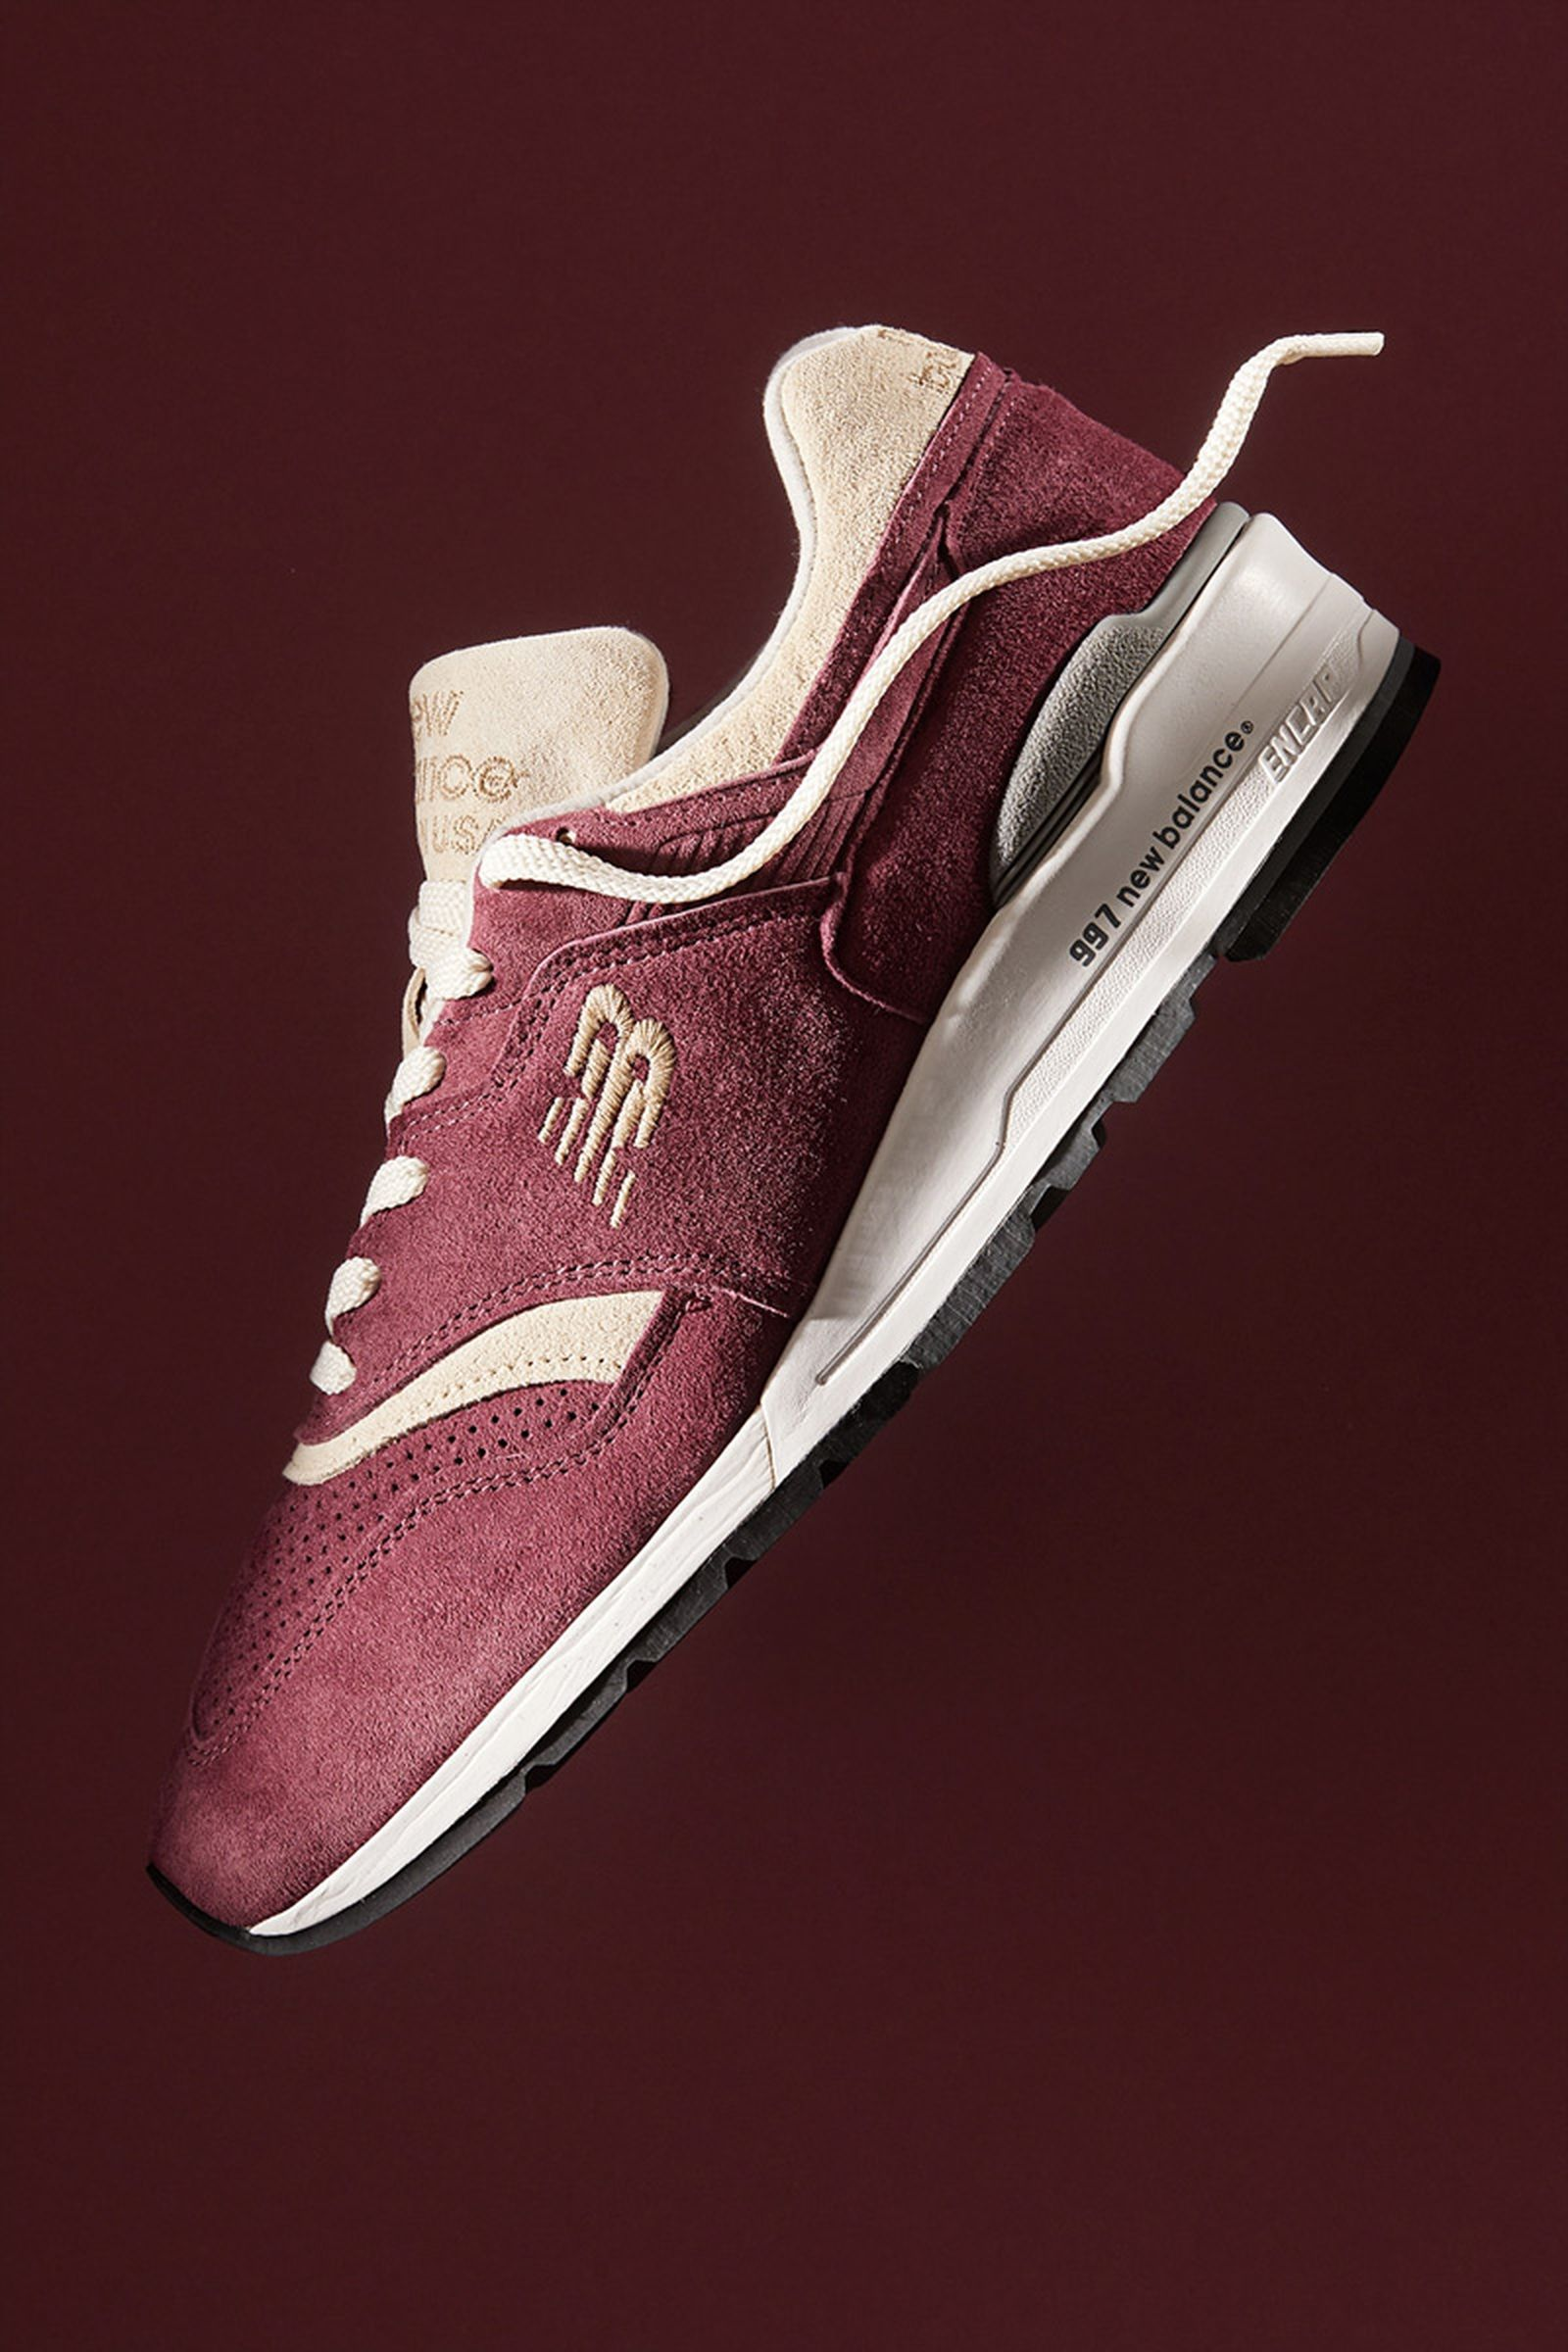 todd-snyder-new-balance-triborough-997-release-date-price-07